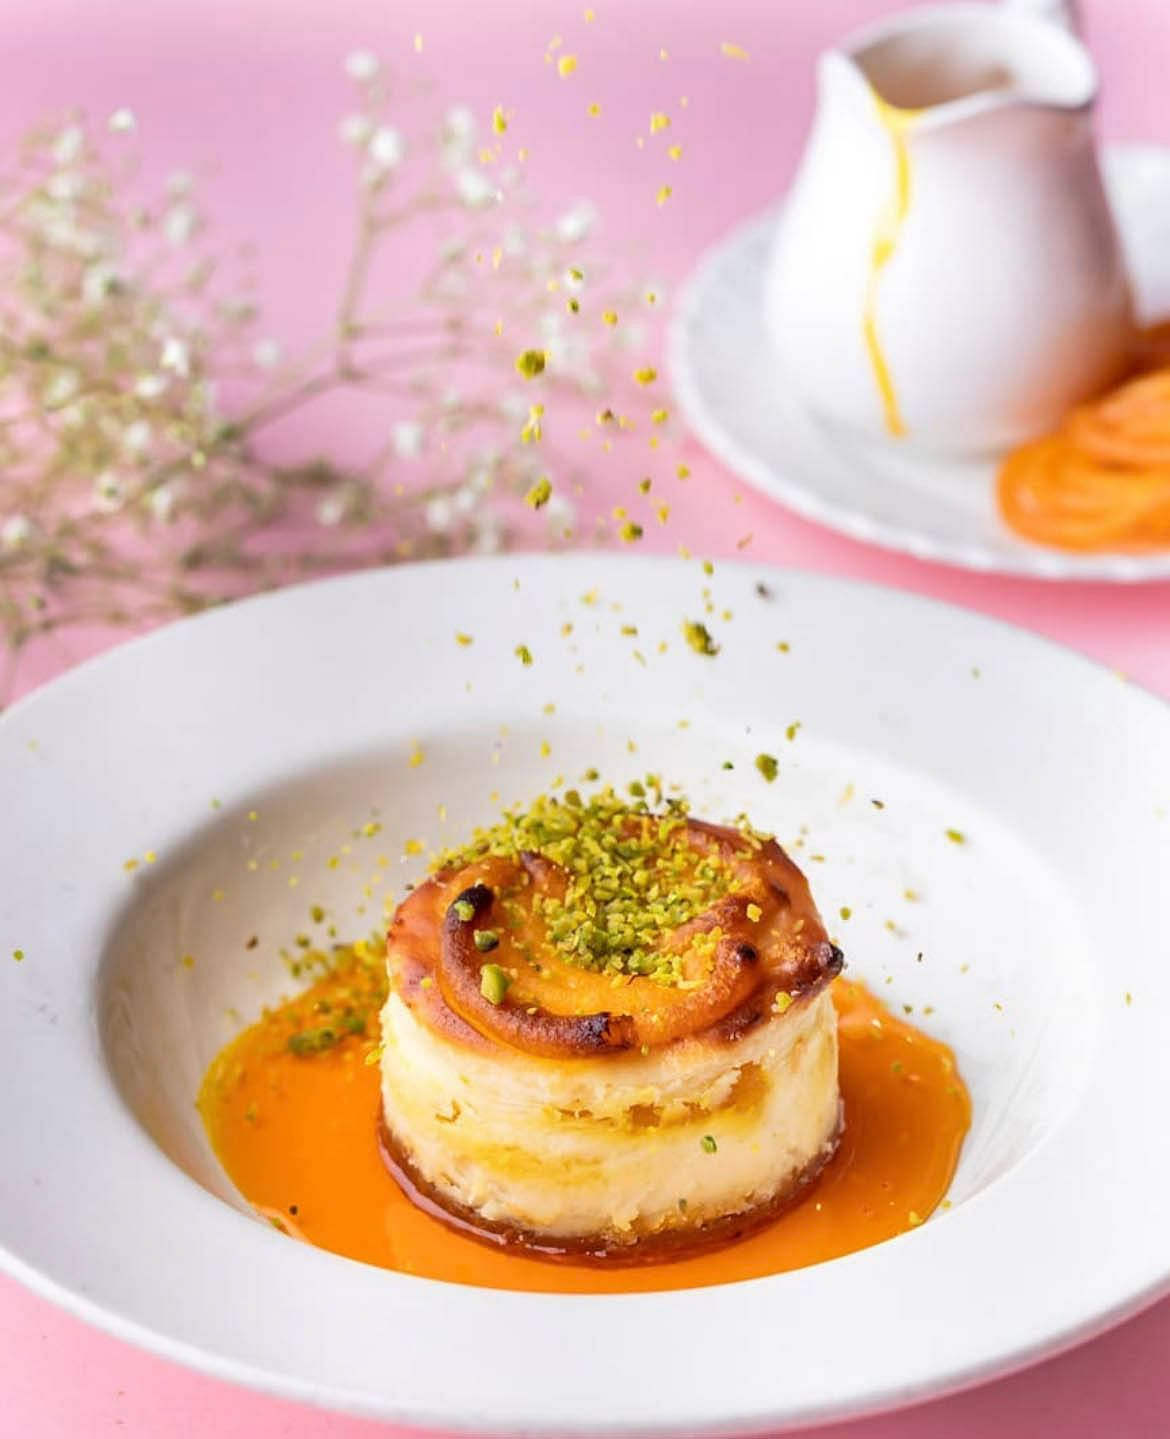 When sweet met salty: What happens when two different flavours meet to form a delicious dish | Free Press Journal